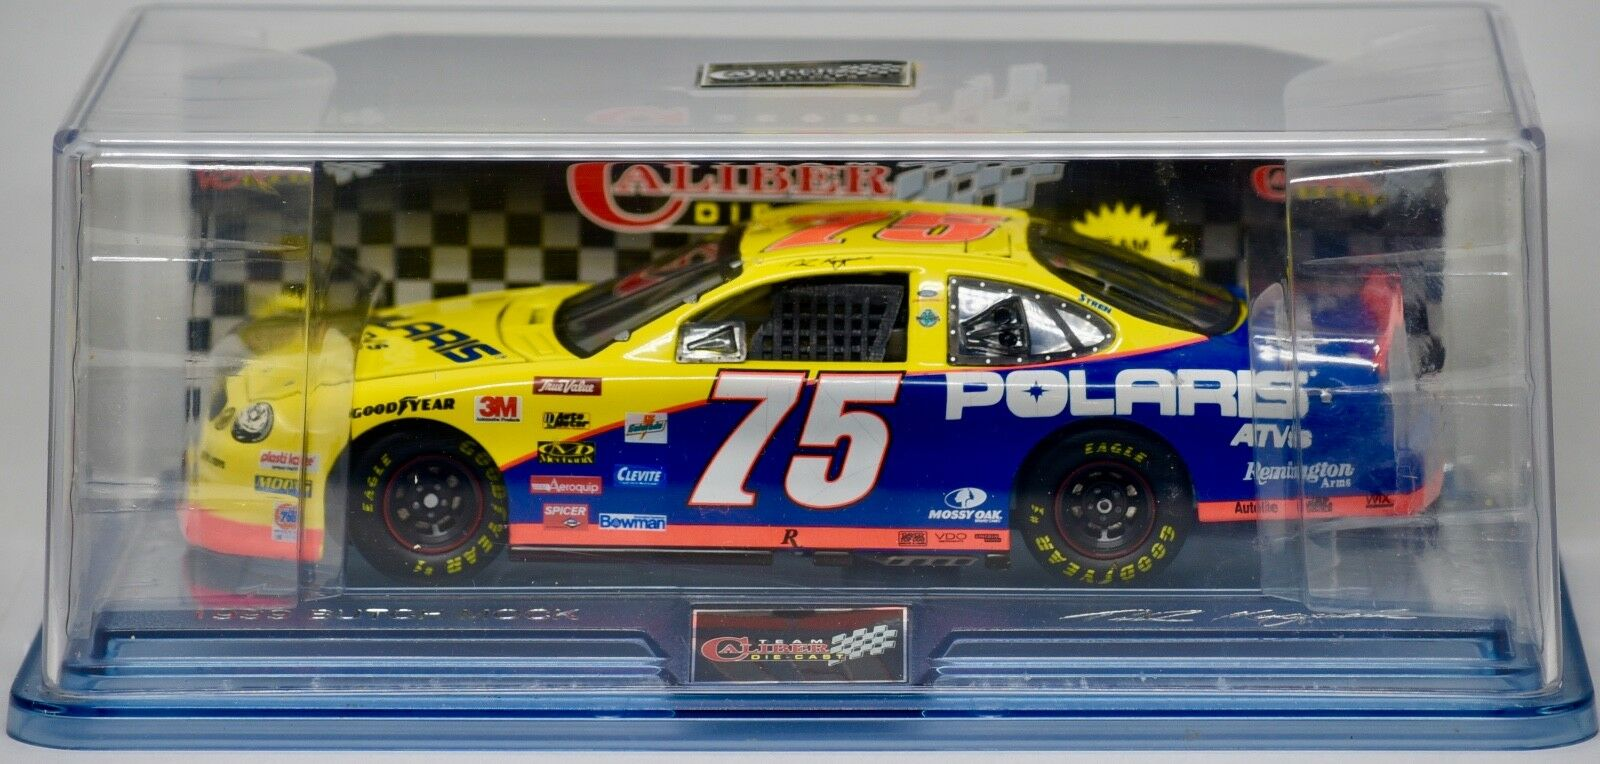 1999 - Team Caliber - Ted Musgrave Polaris ATVs Ford Taurus 1 24 Scale New